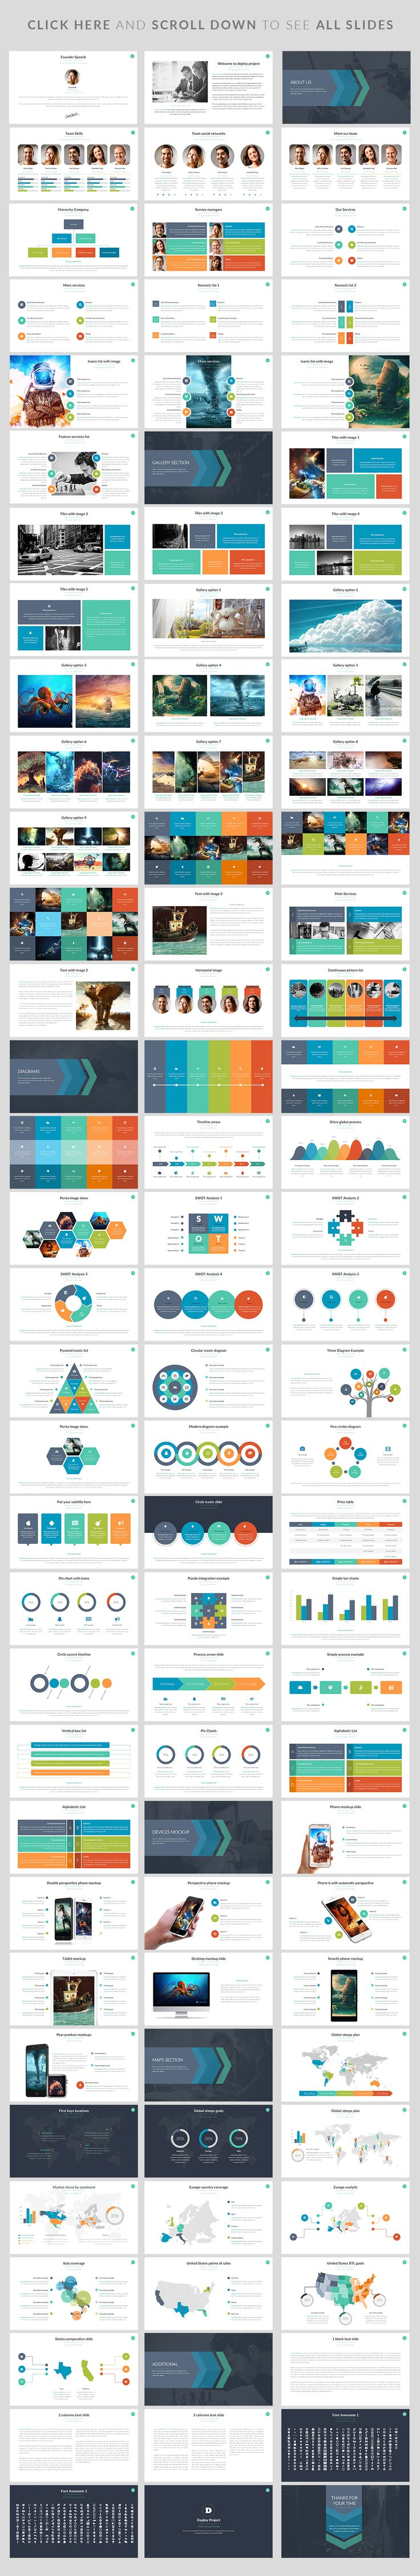 First Goal | Powerpoint Template by Zacomic Studios on Creative Market